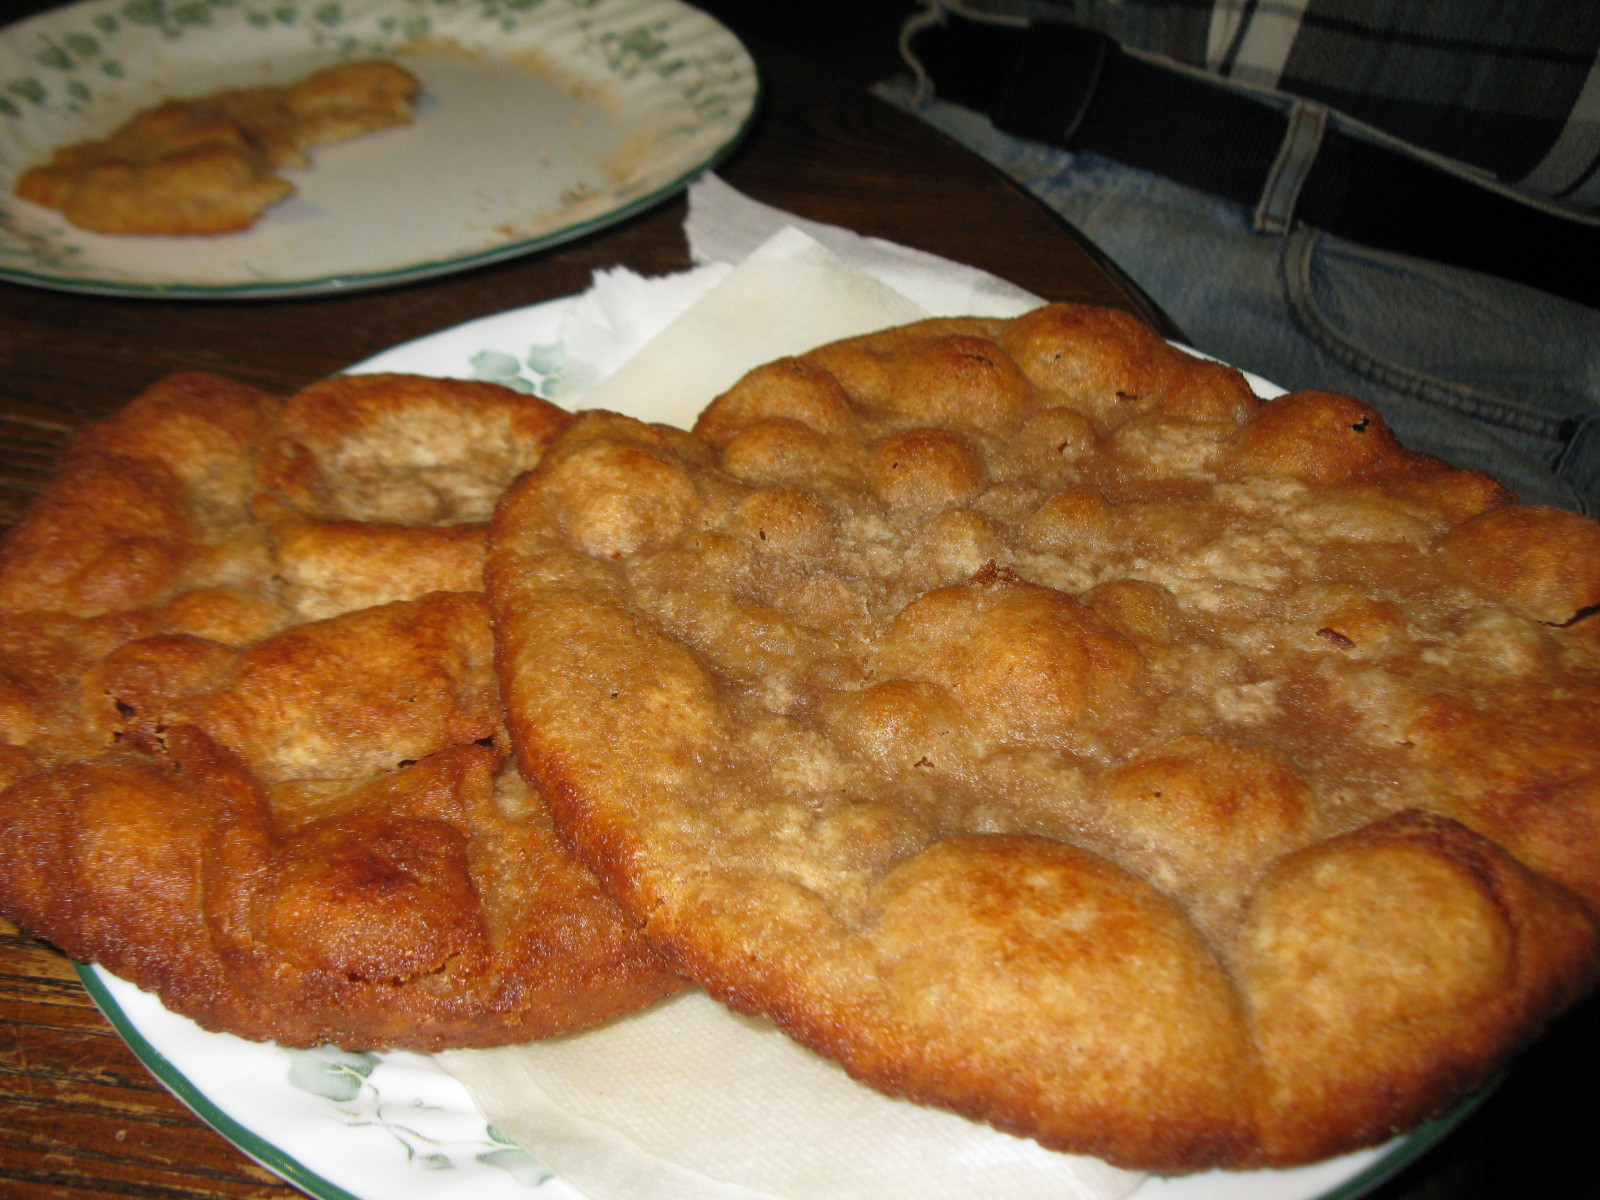 How To Make Indian Fry Bread  Simply Homemaking Indian Fry Bread my way